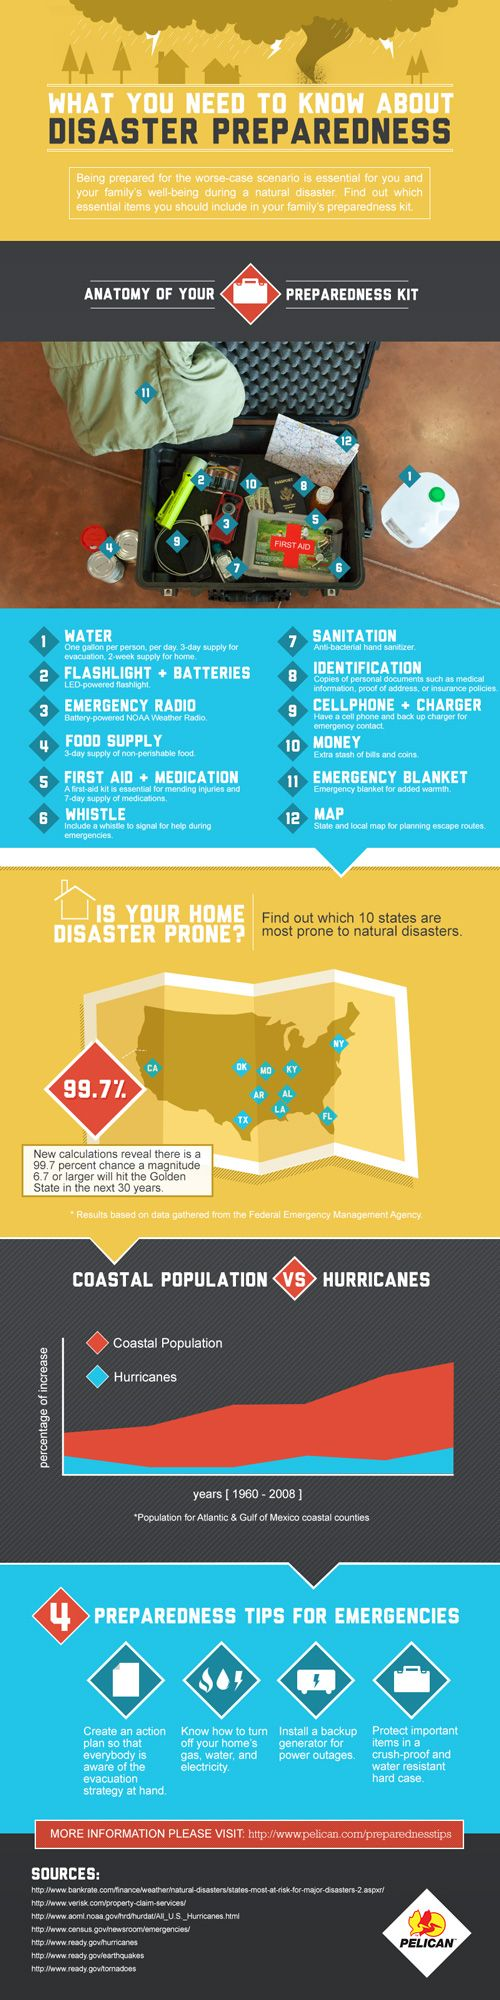 Disaster preparedness in an infographic.